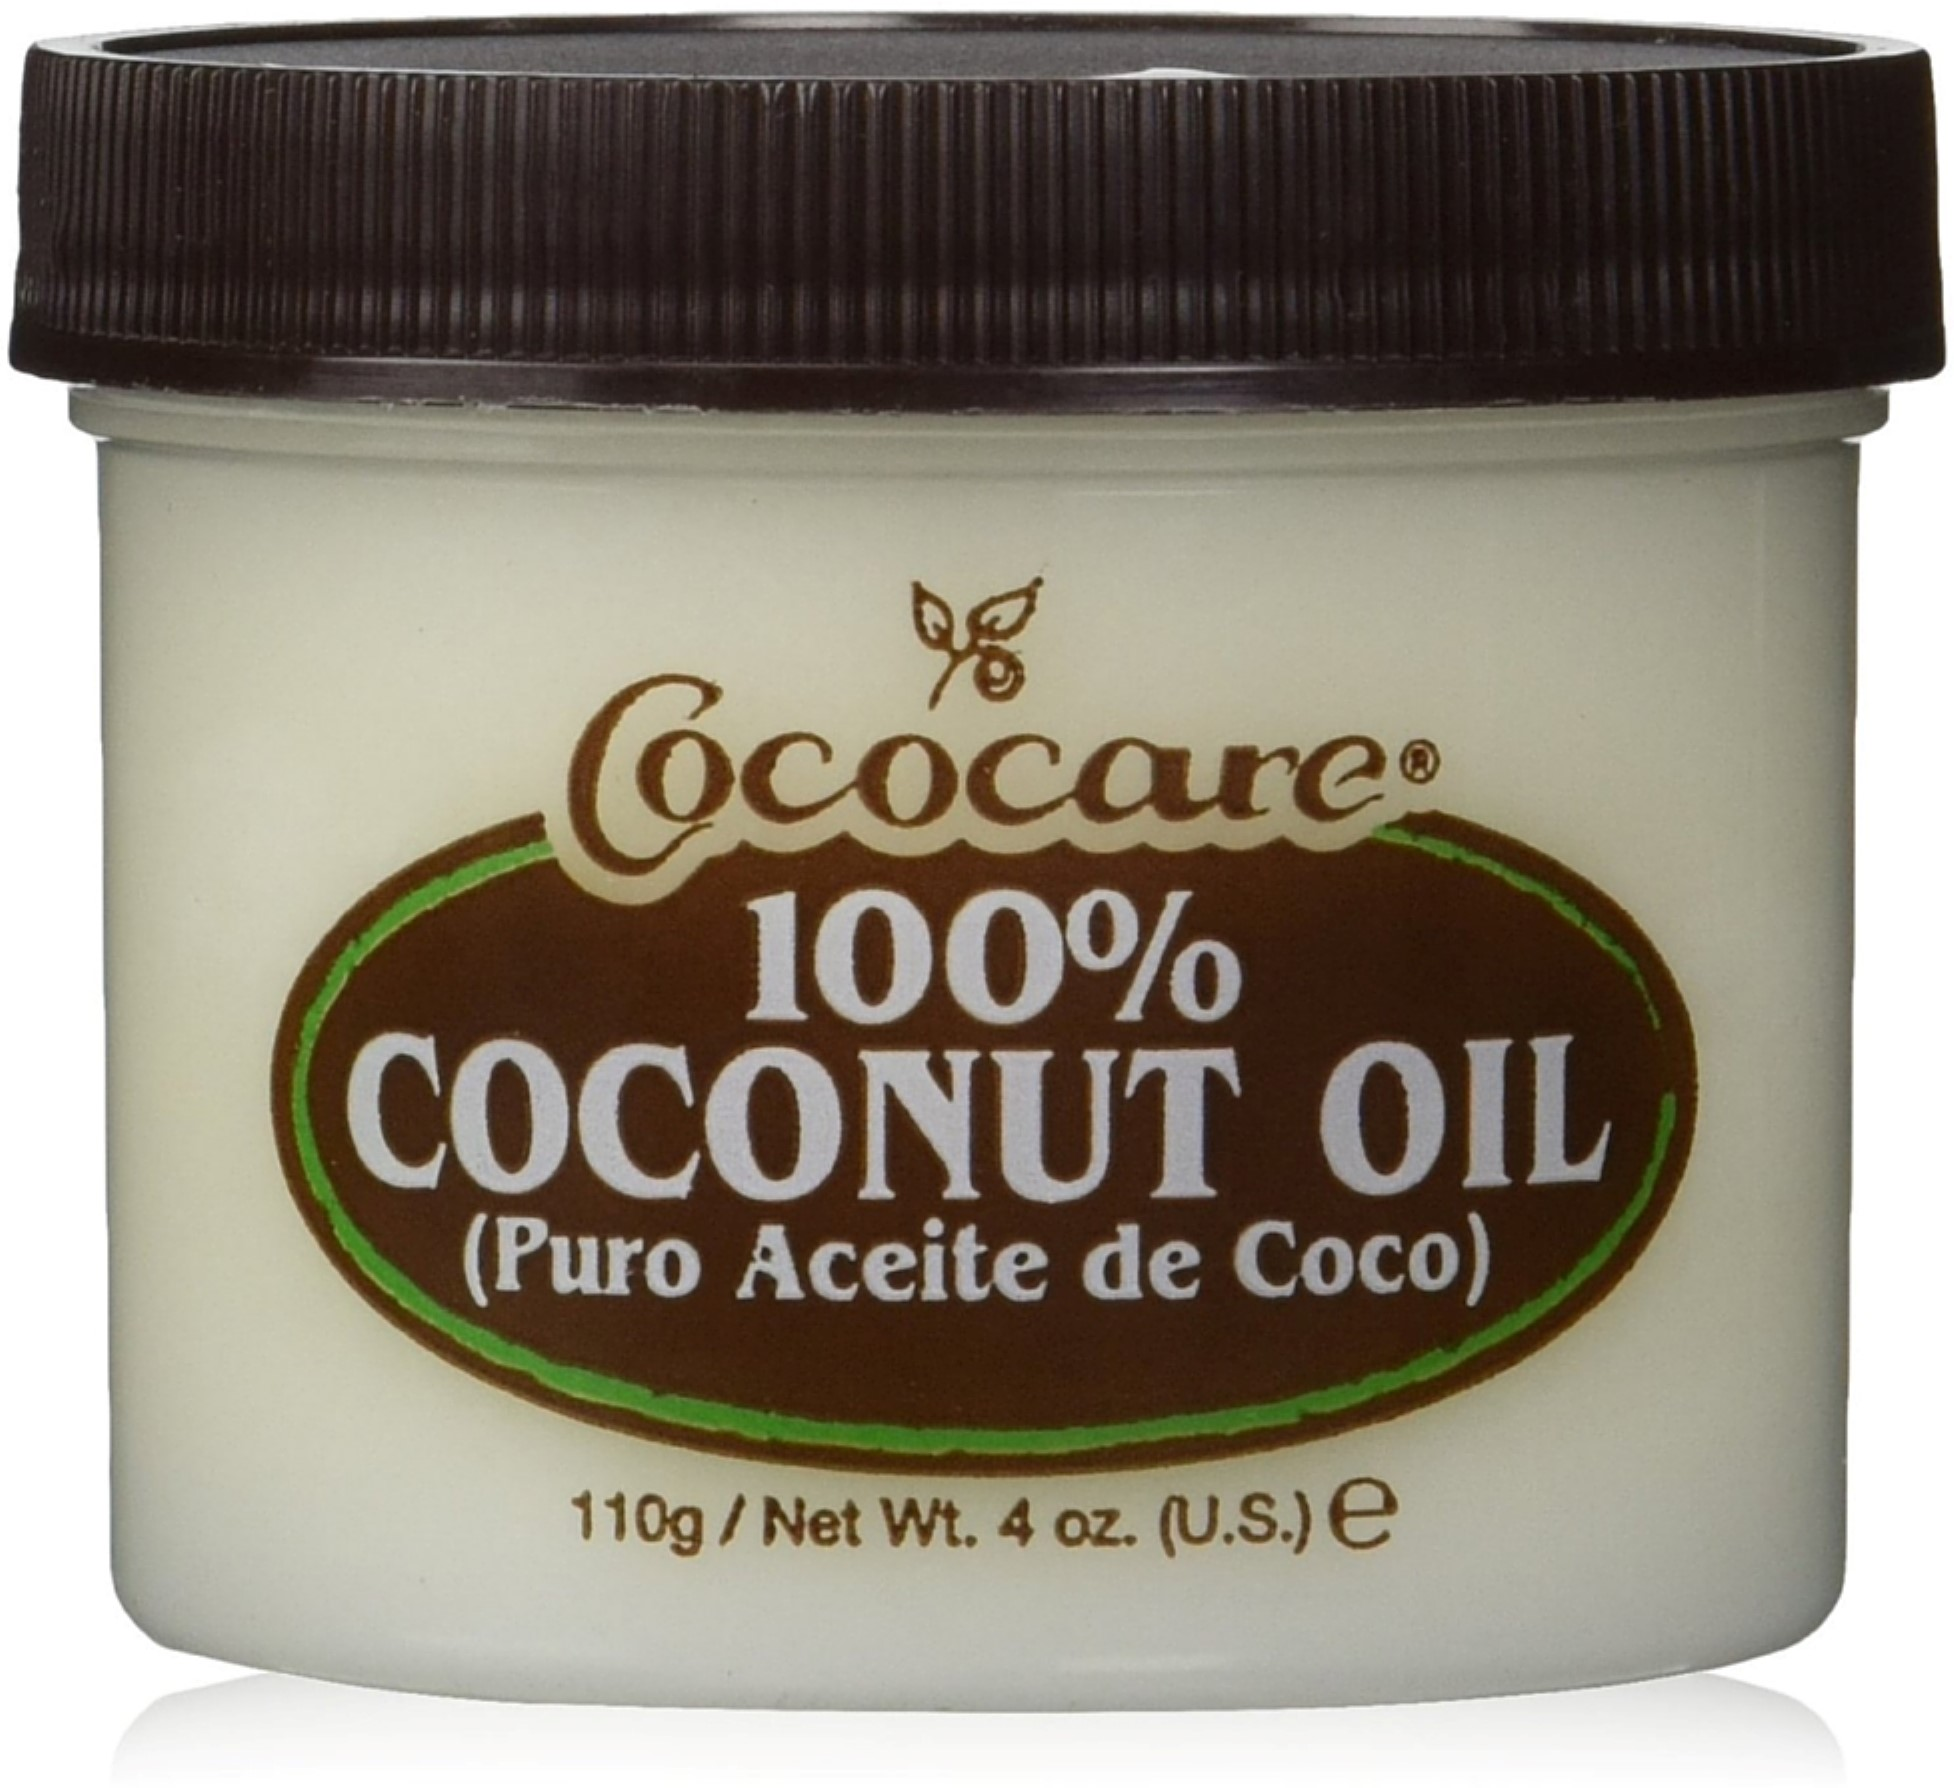 Cococare 100% Coconut Oil 4 oz (Pack of 2)